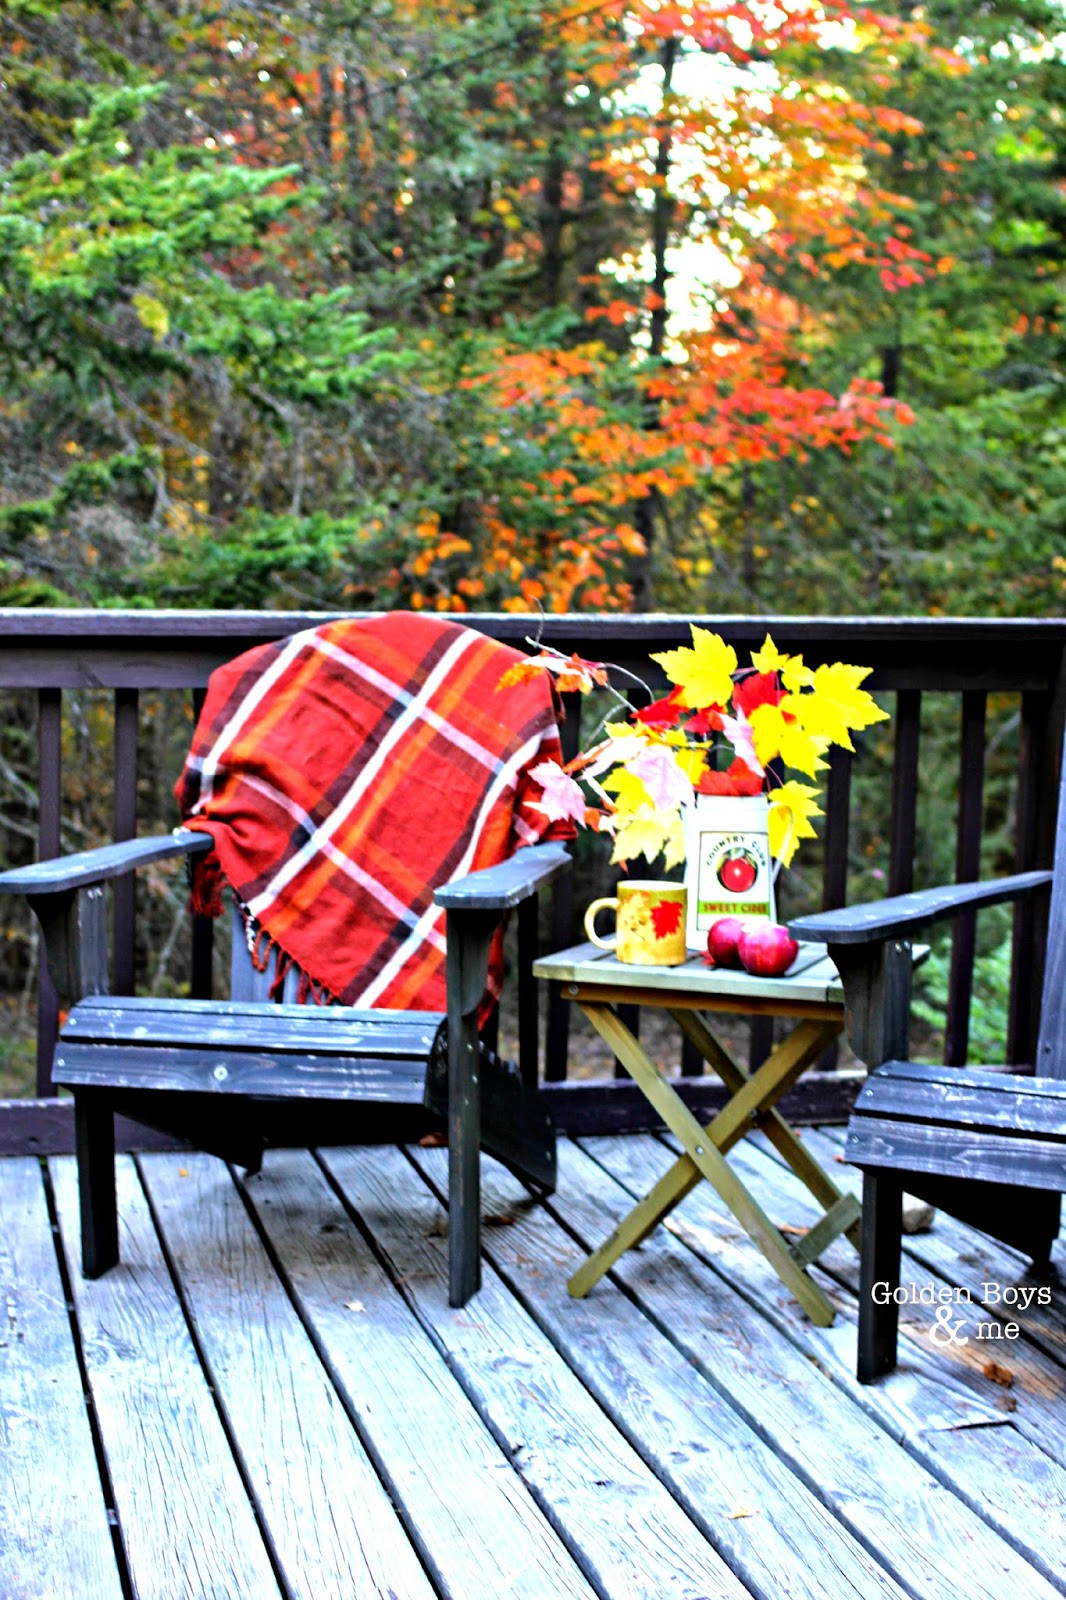 Fall porch decor ideas with adirondack chairs-www.goldenboysandme.com